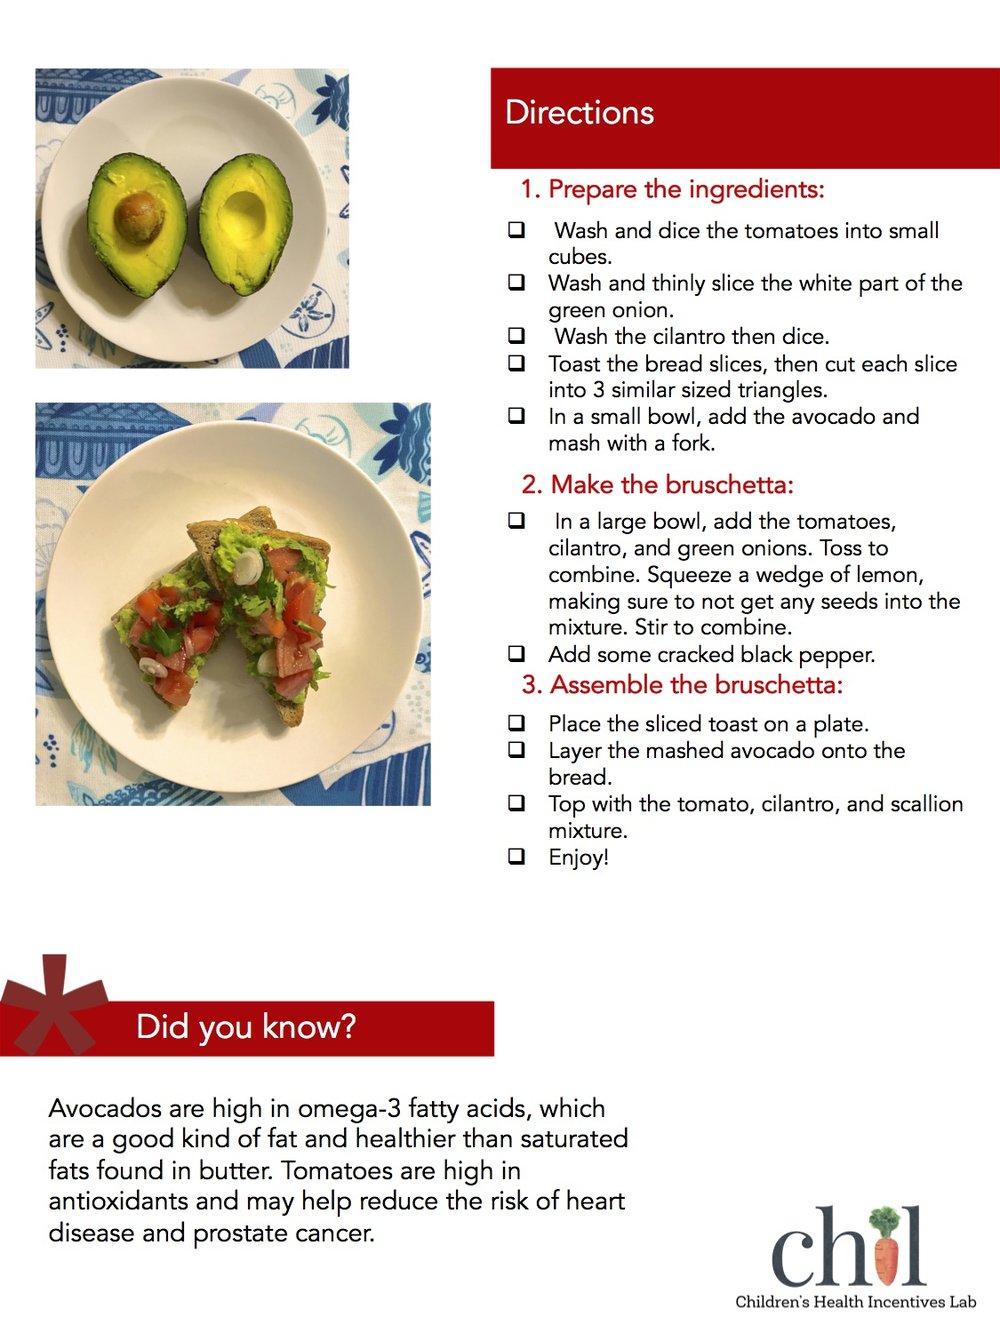 CHIL Cookbook Recipe Sample.jpg